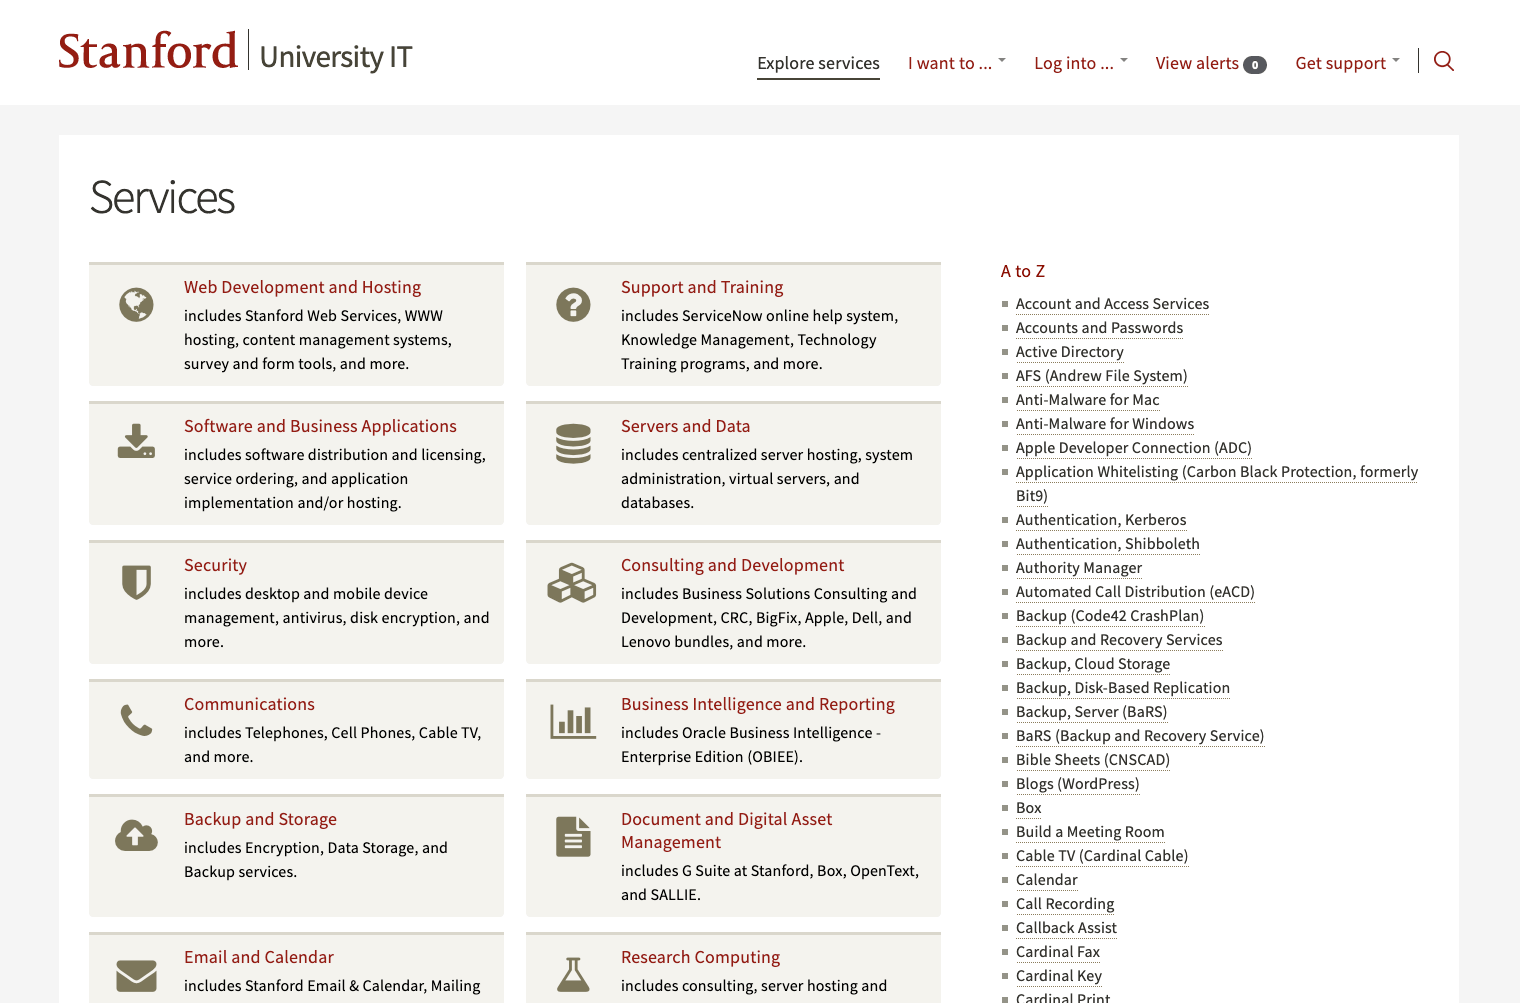 Service catalog of Stanford University